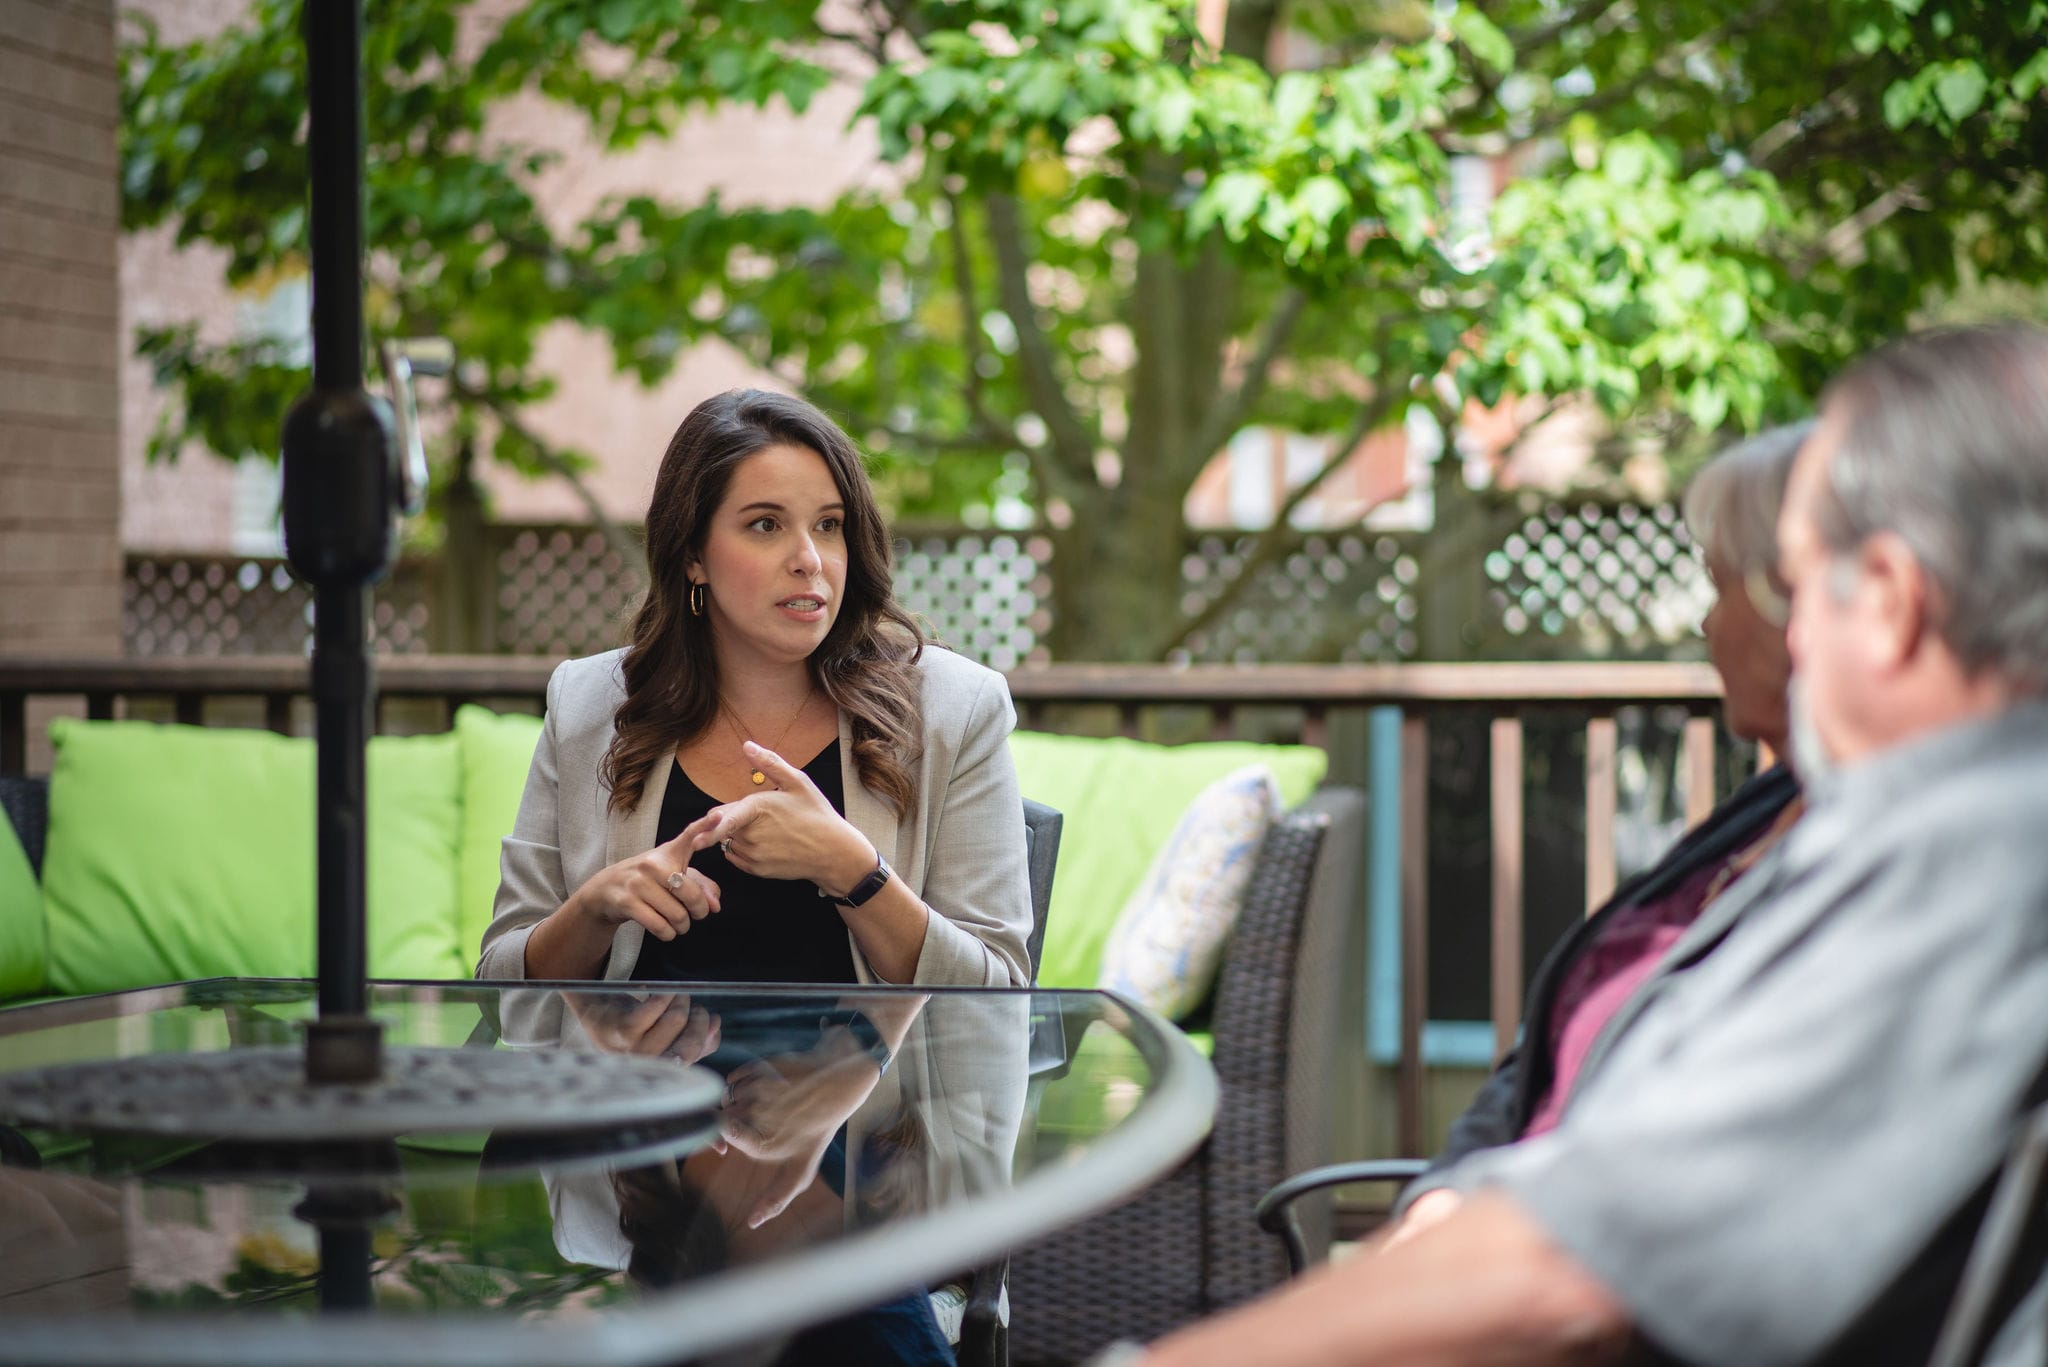 Mallory McGrath talking to a family at a patio table